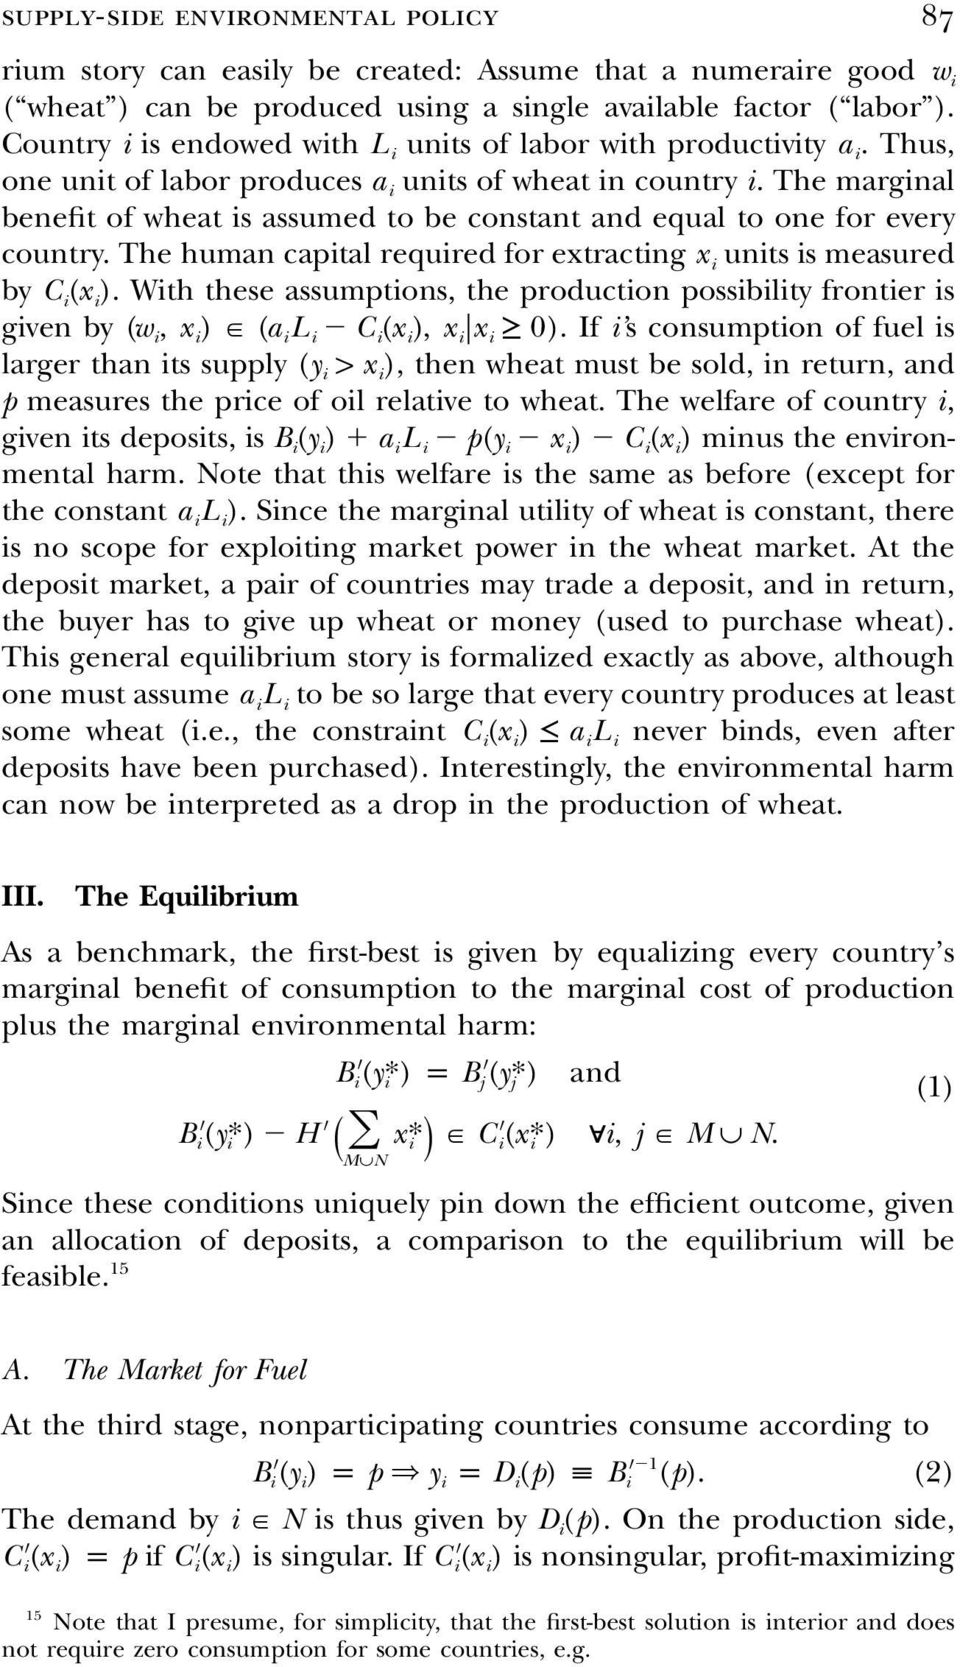 The marginal benefit of wheat is assumed to be constant and equal to one for every country. The human capital required for extracting x i units is measured by C i(x i).